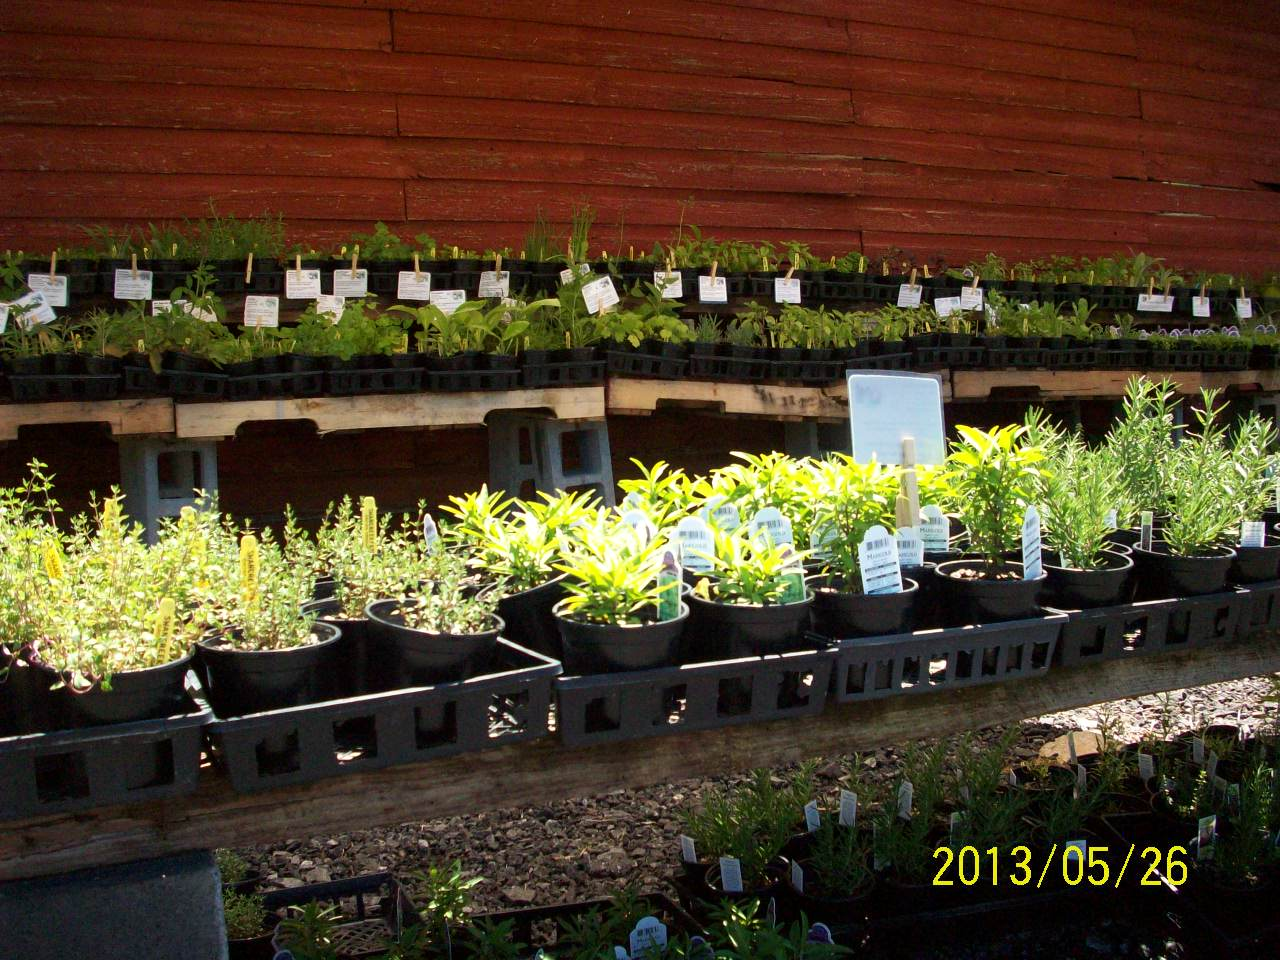 organic medicinal herbs for sale at farm